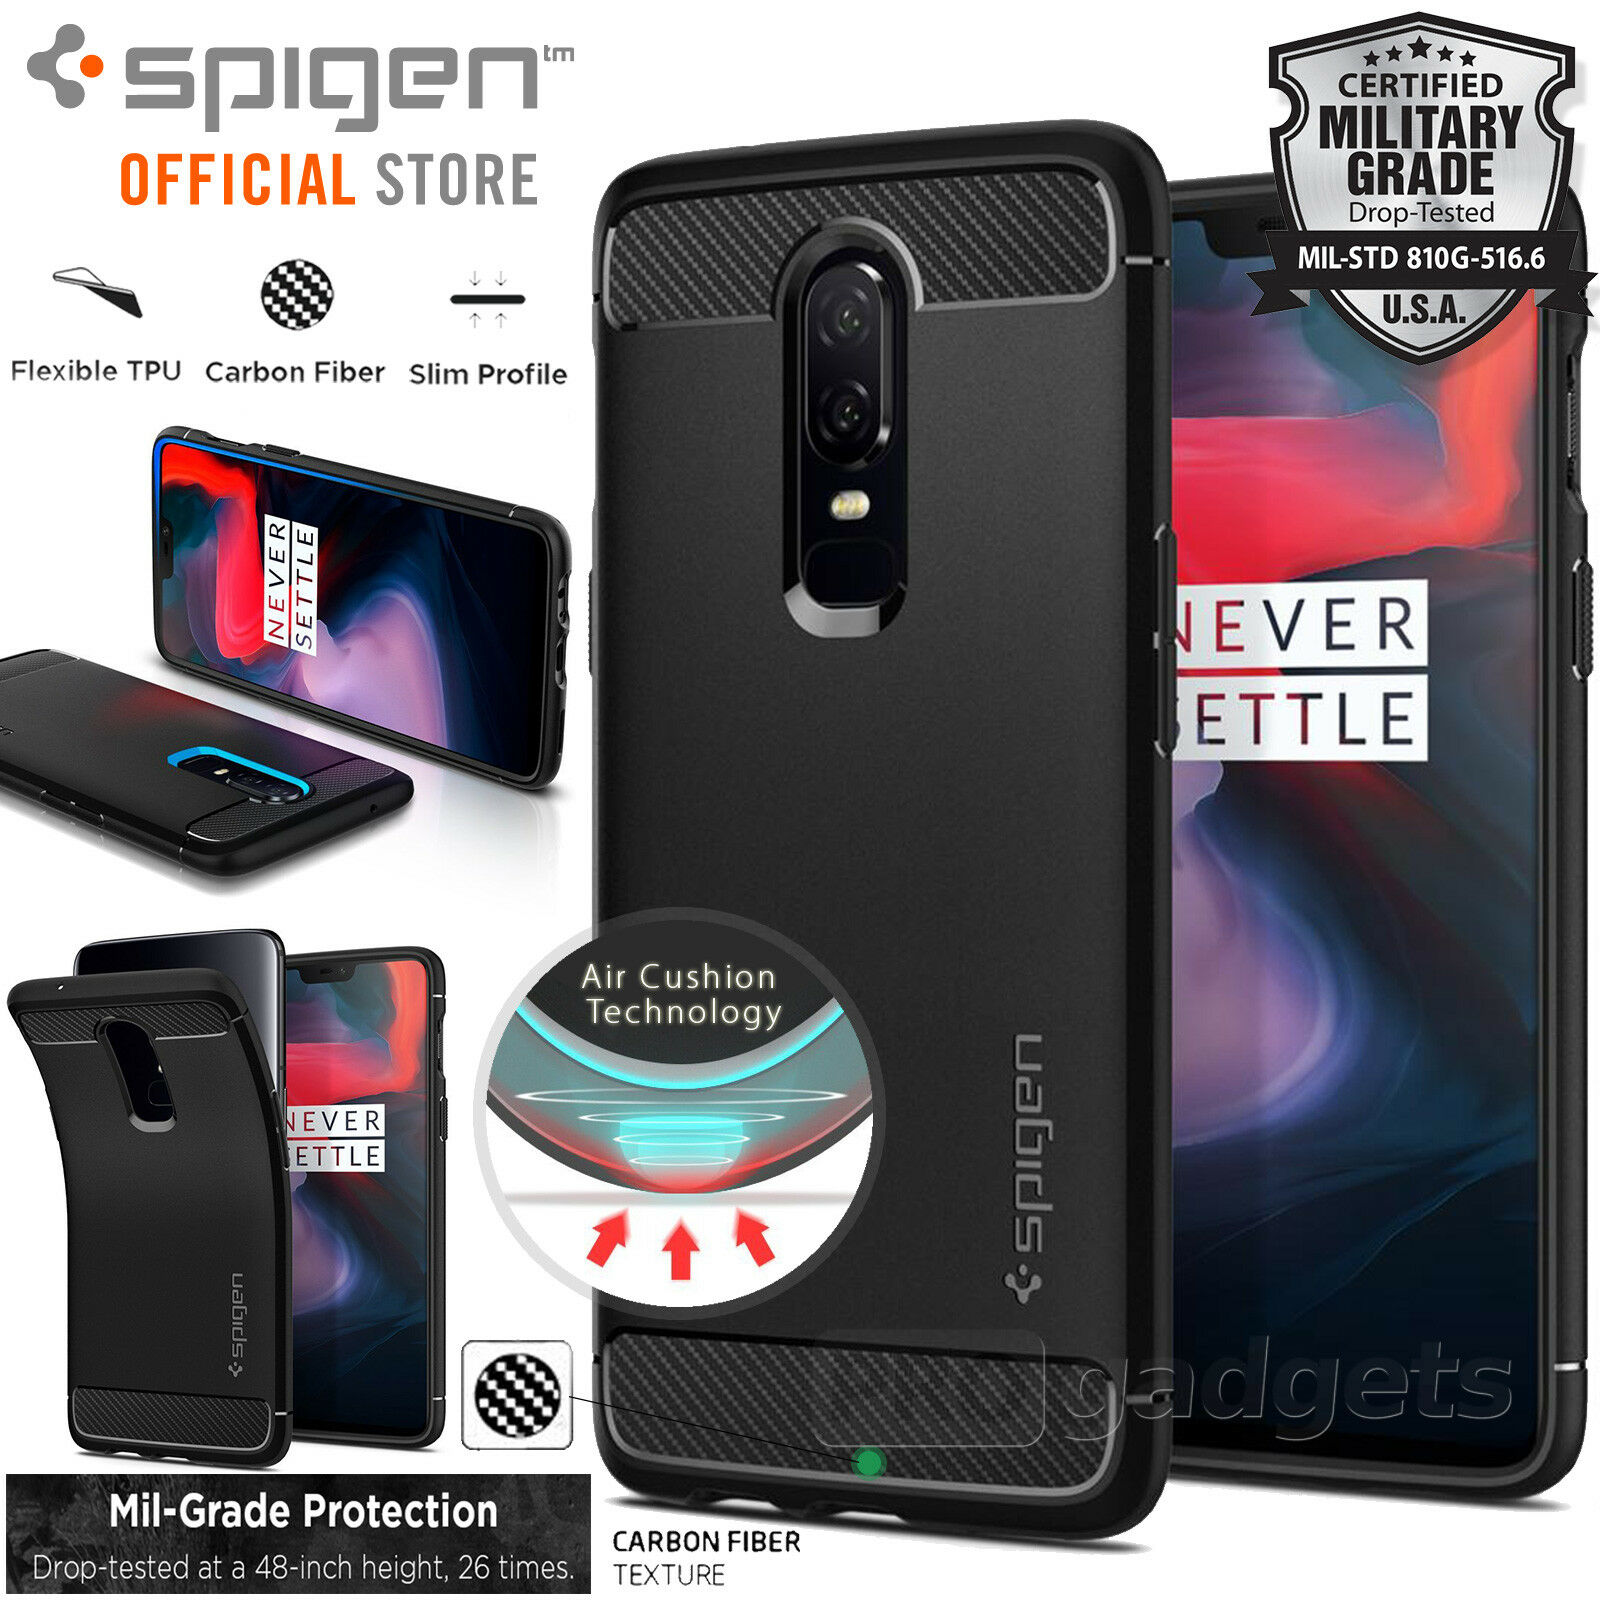 Oneplus 6 Case Genuine Spigen Rugged Armor Resilient Soft Cover For Samsung S7 Edge Carbon 1 Of 10free Shipping See More